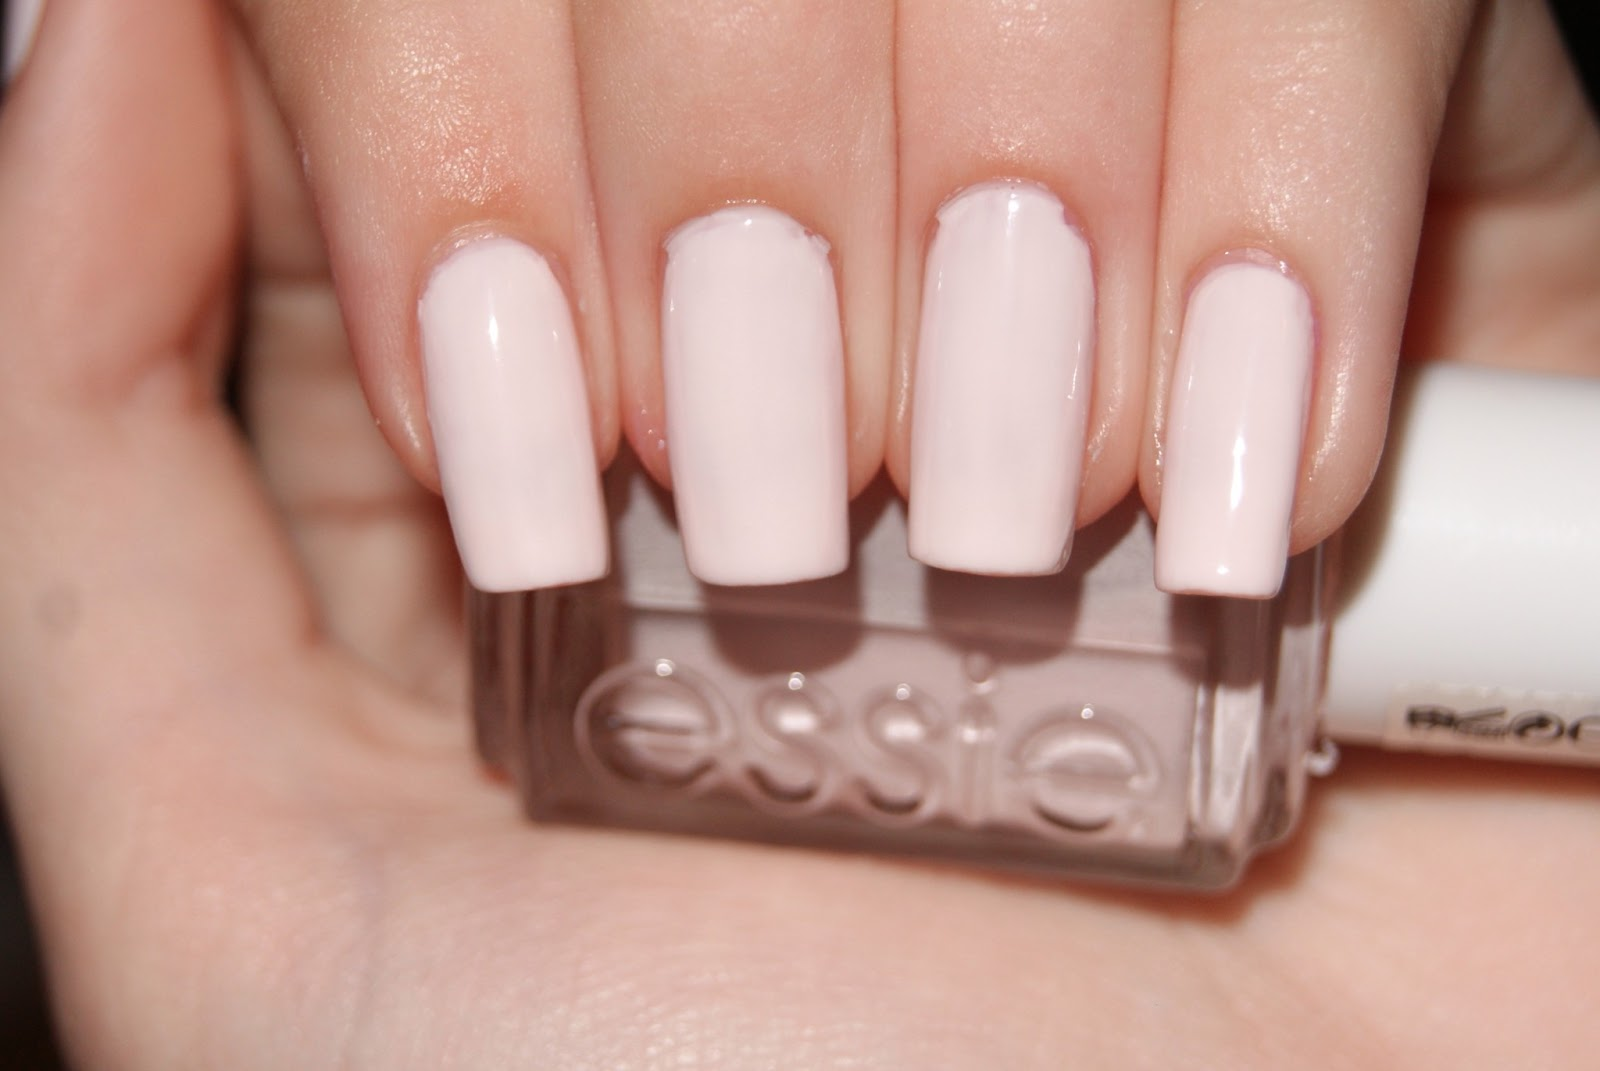 ... nails you see on tumblr. Hipster triangles and gradients. This is